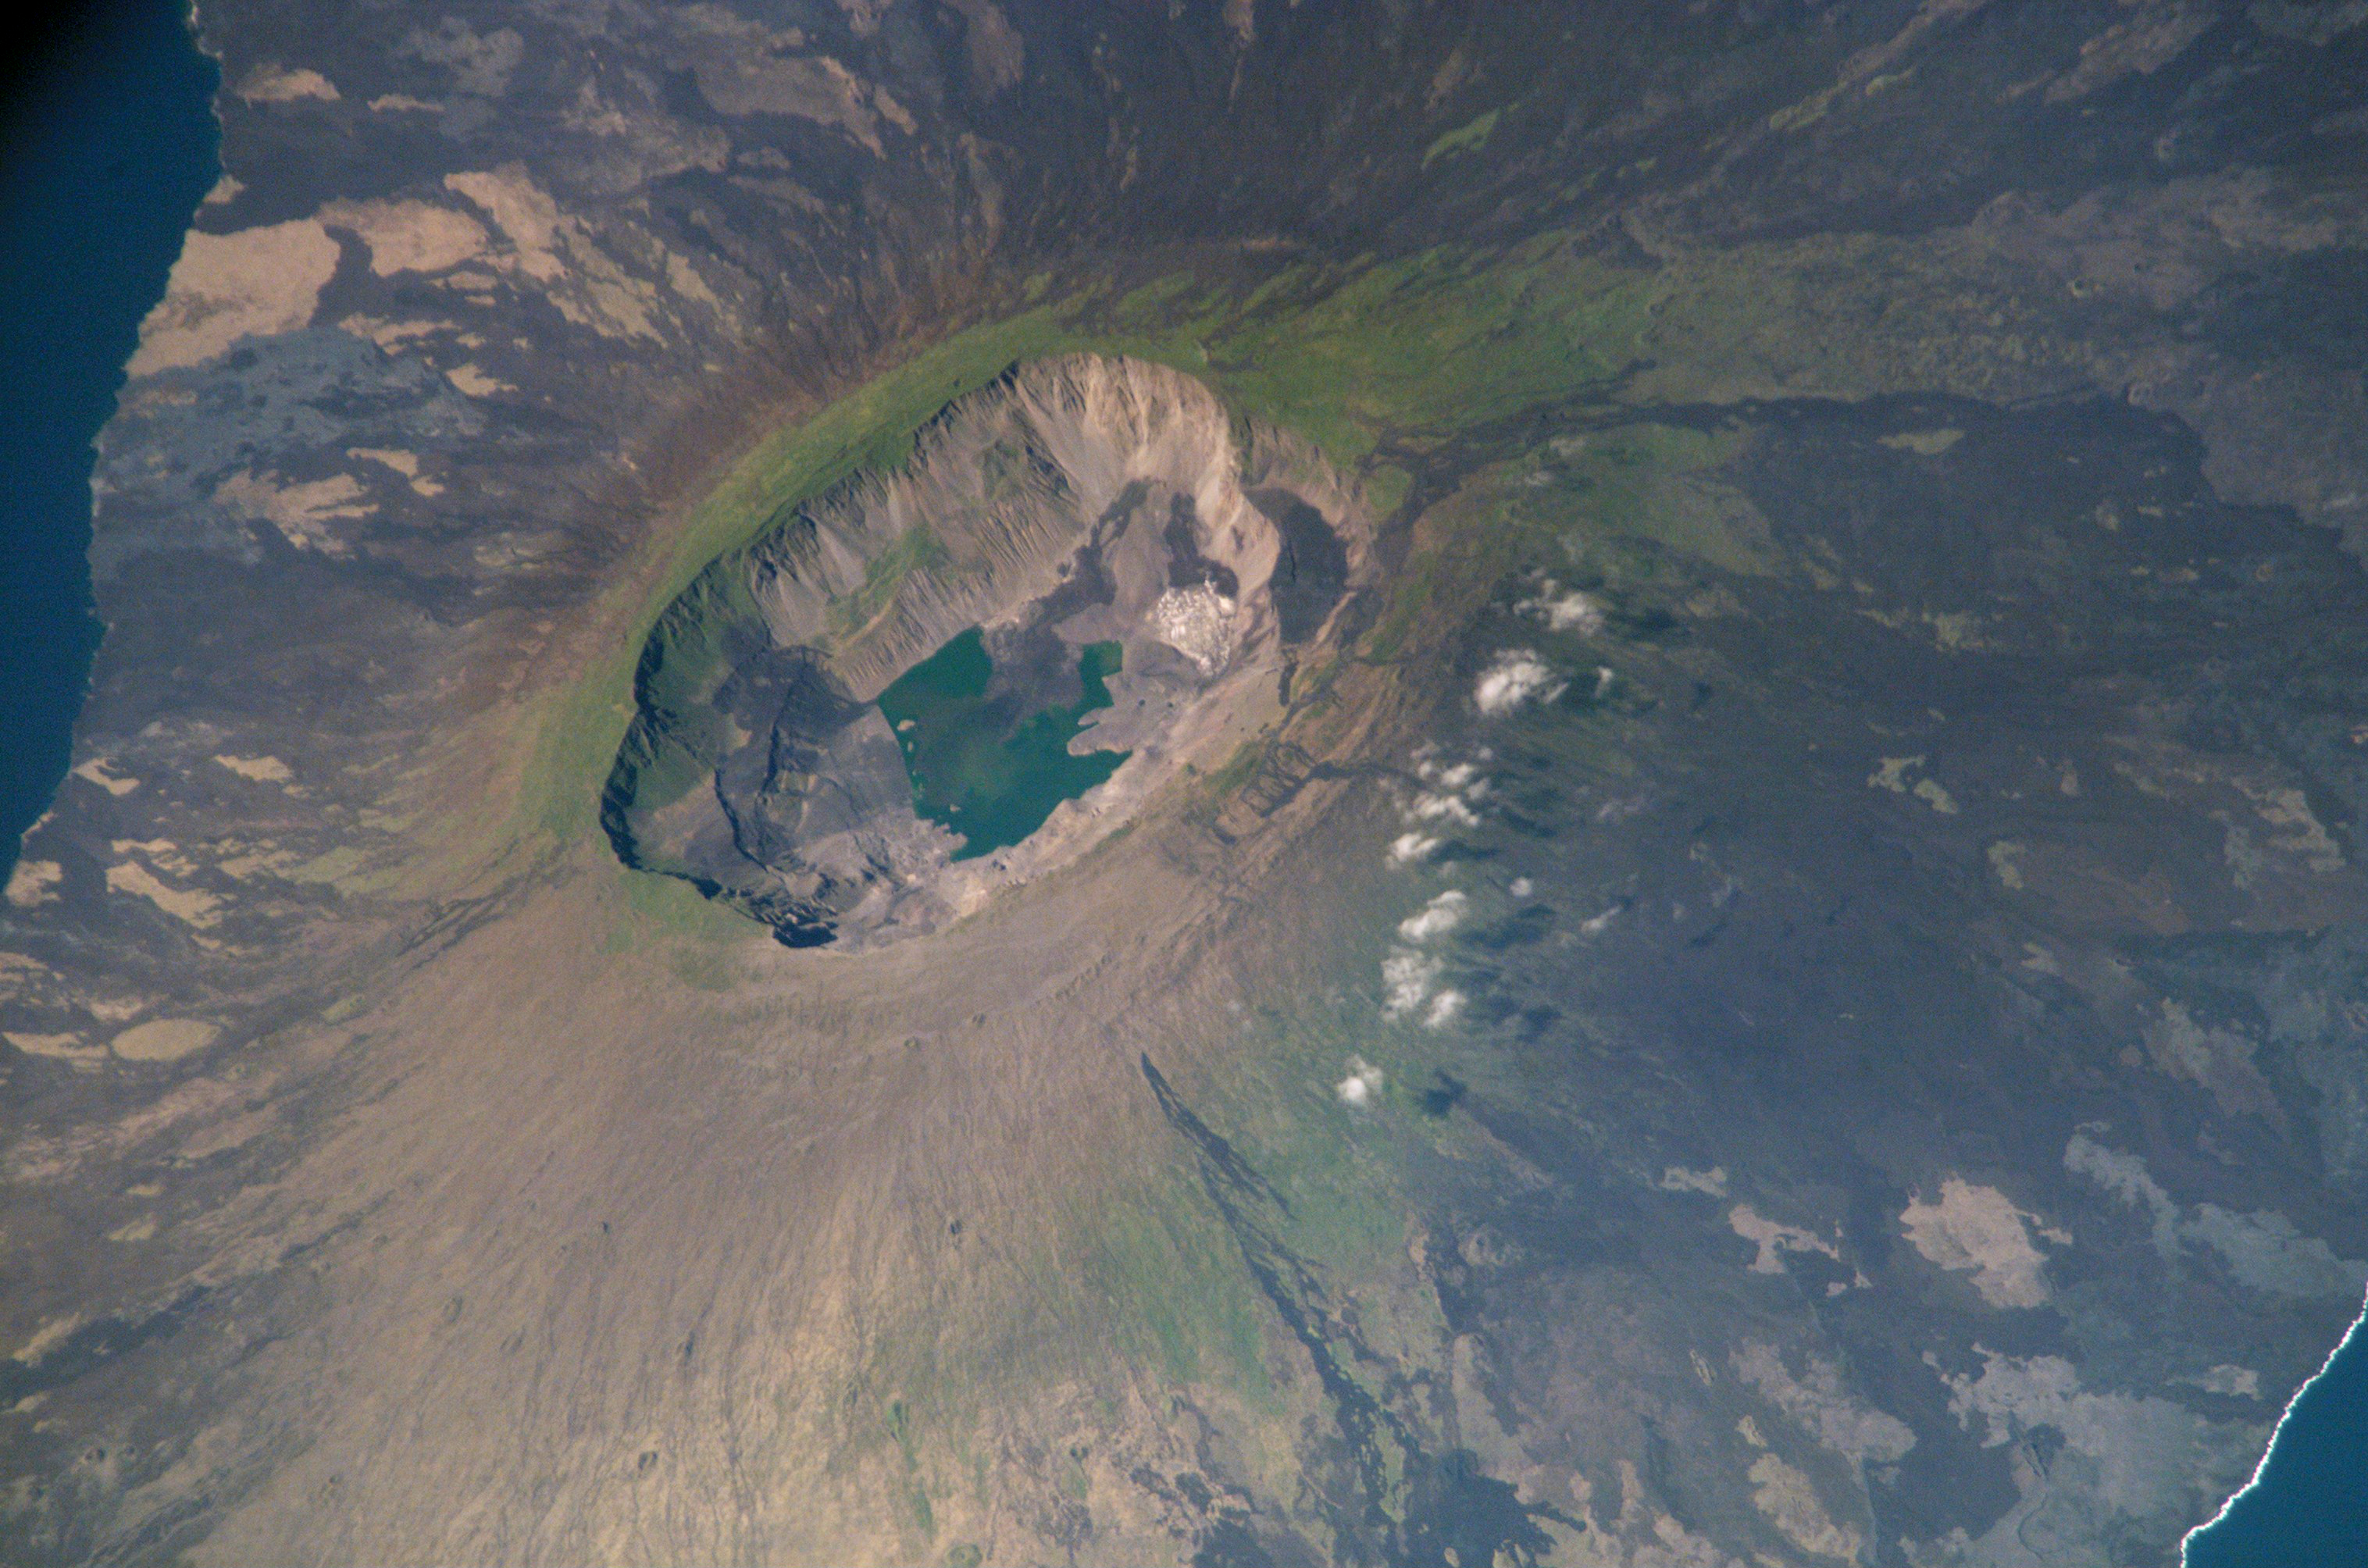 La Cumbre volcano on Fernandina Island is the most active volcano on the Galapagos, erupting most recently on June 16, 2018. The volcano rises 4,842 feet (1,476 m) above sea level. This photo was taken by the Expedition 5 crew aboard the International Space Station on July 6, 2002. The scene provides a detailed view of the 850-m-deep summit caldera. The dark flows in the middle of the caldera floor were erupted in 1991. Today, these flows are partly covered by dark green vegetation.